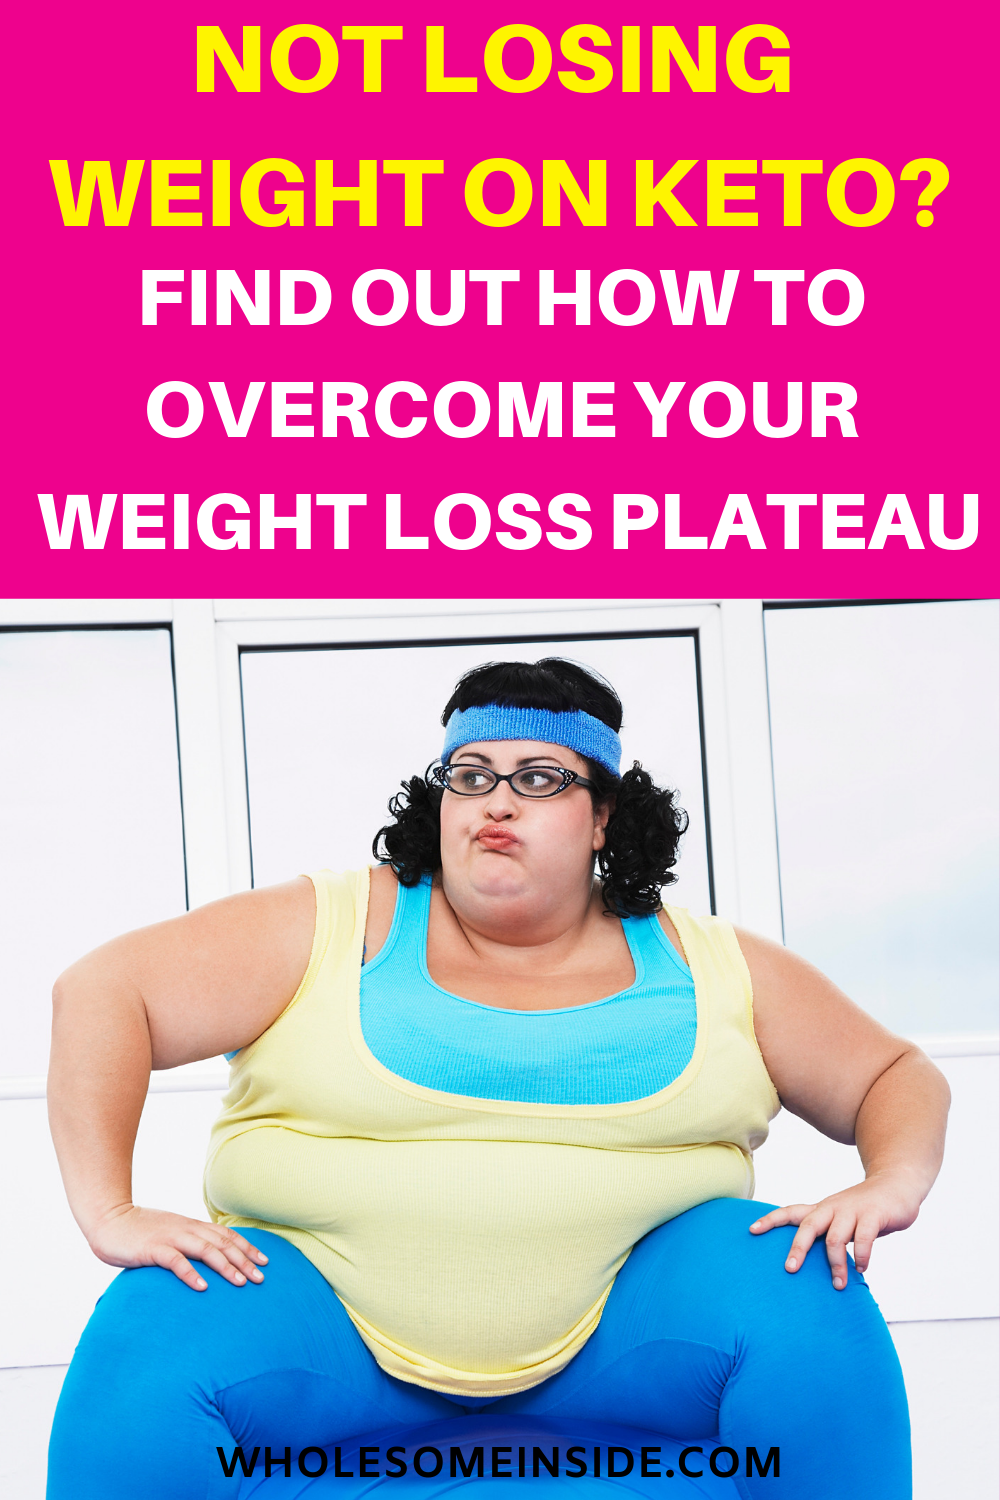 not losing weight on keto, weiagh has stalled on keto, weight loss plateau, how to get over a weight loss plateau